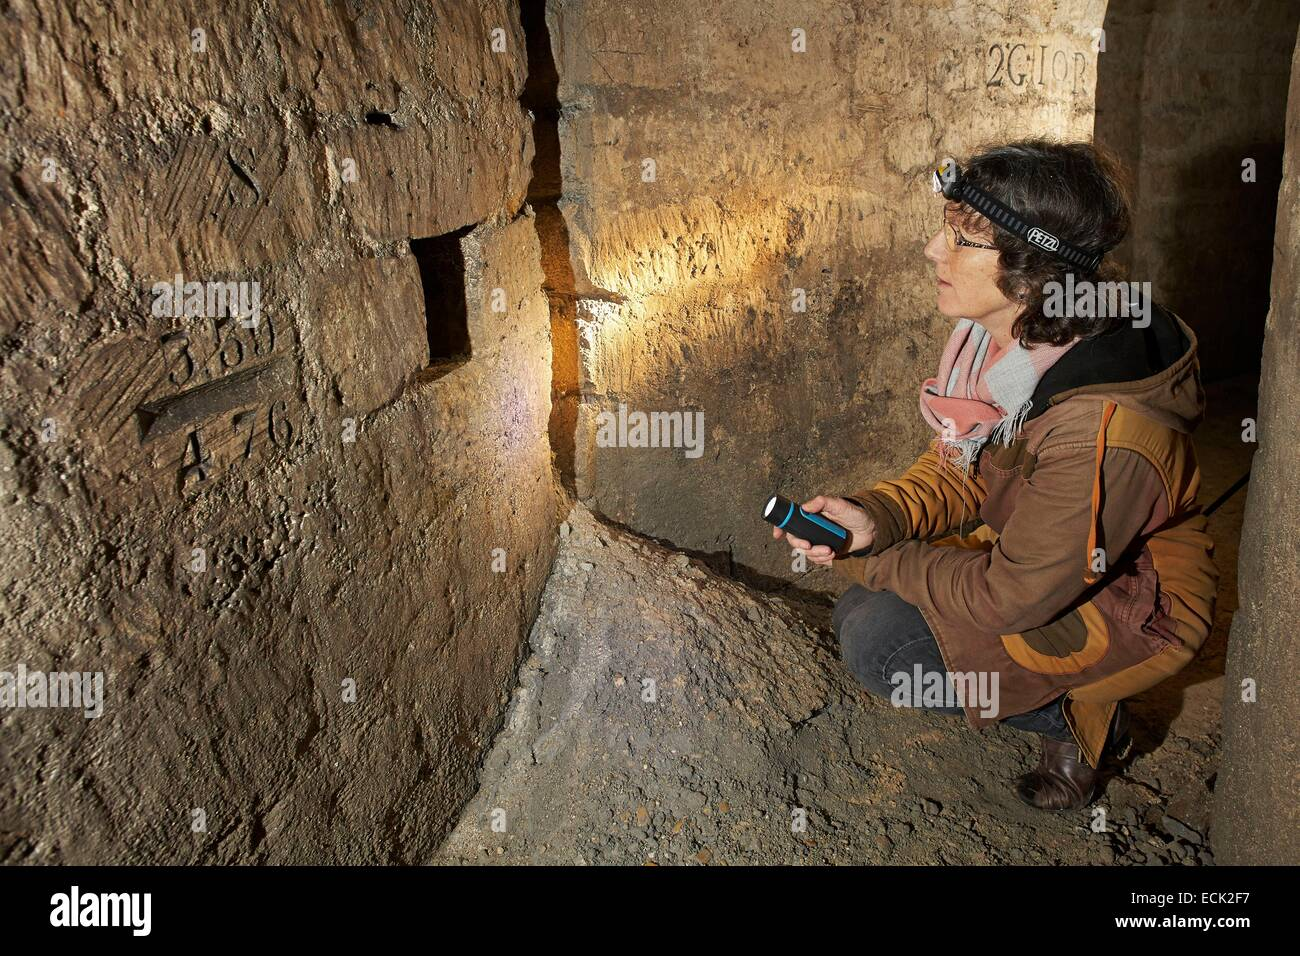 France, Paris, National Museum of Natural History, Christine Rollard, araneologist, illuminating a cavity in the - Stock Image